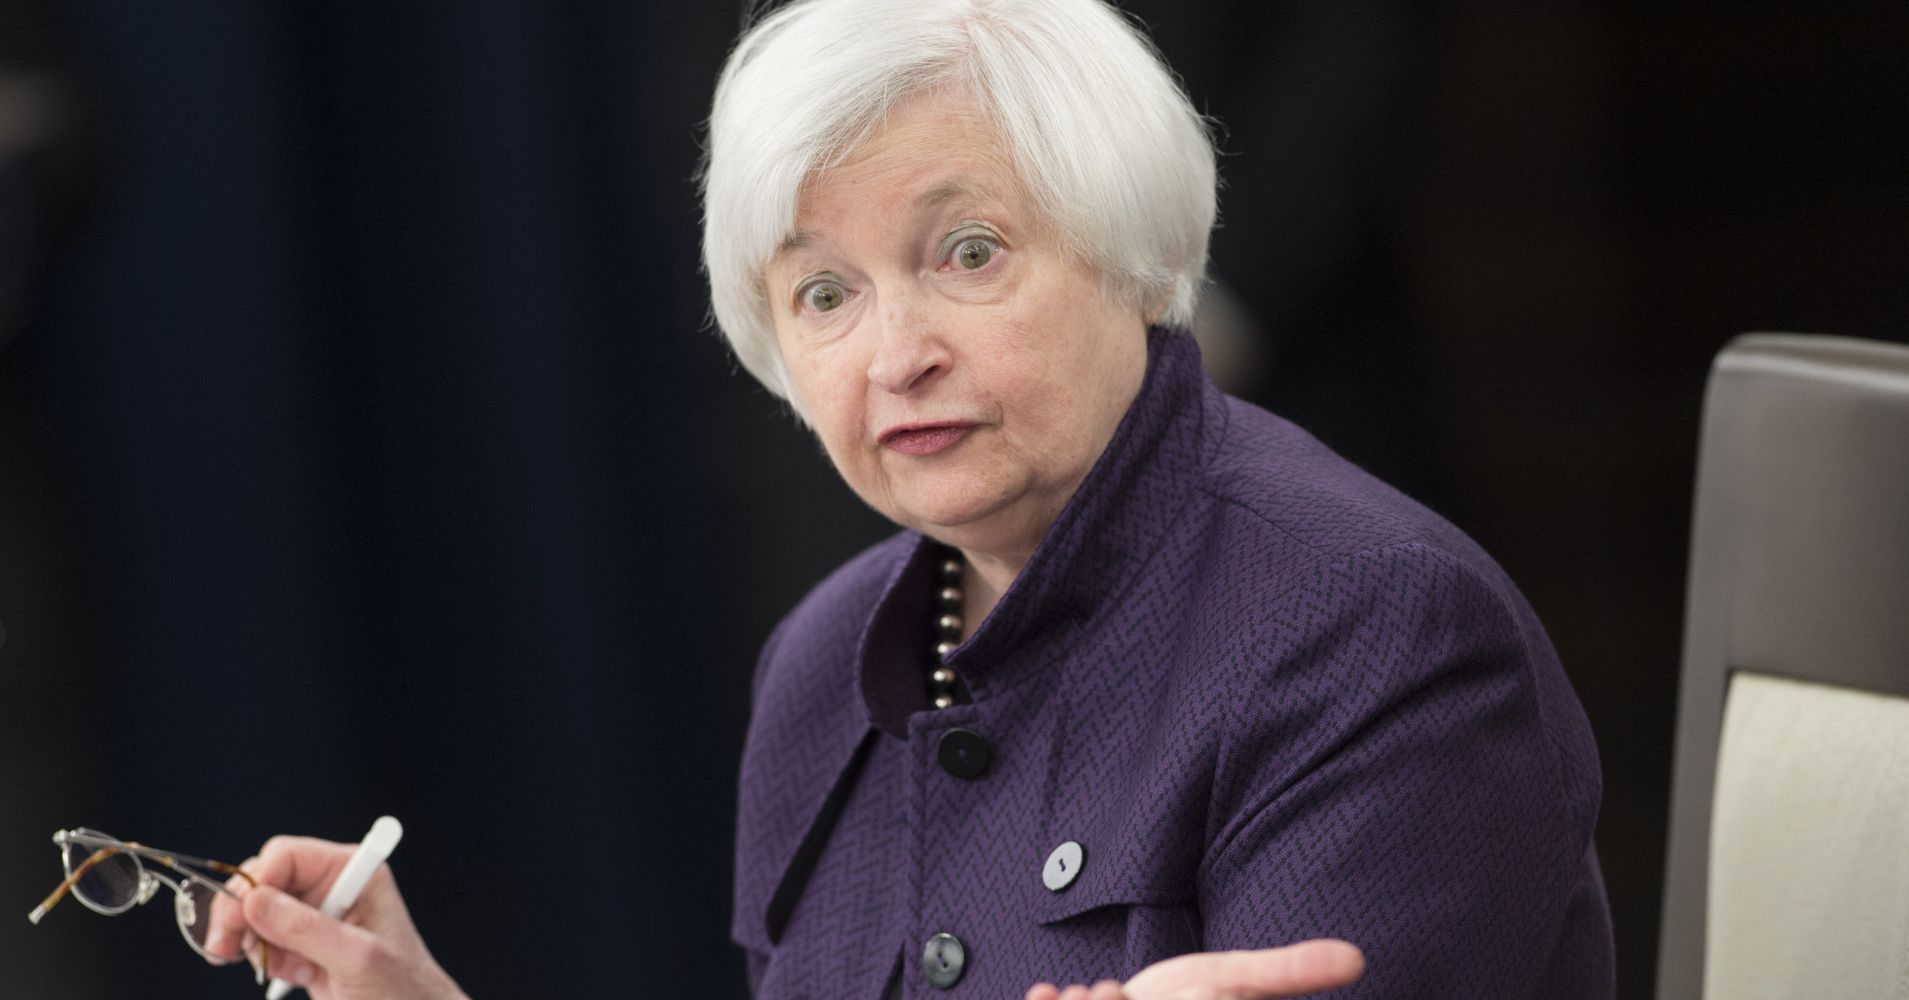 Yellen globalization makes higher education increasingly important wall street journal - Janet Yellen Has The Perfect Response To Donald Trump S Criticism